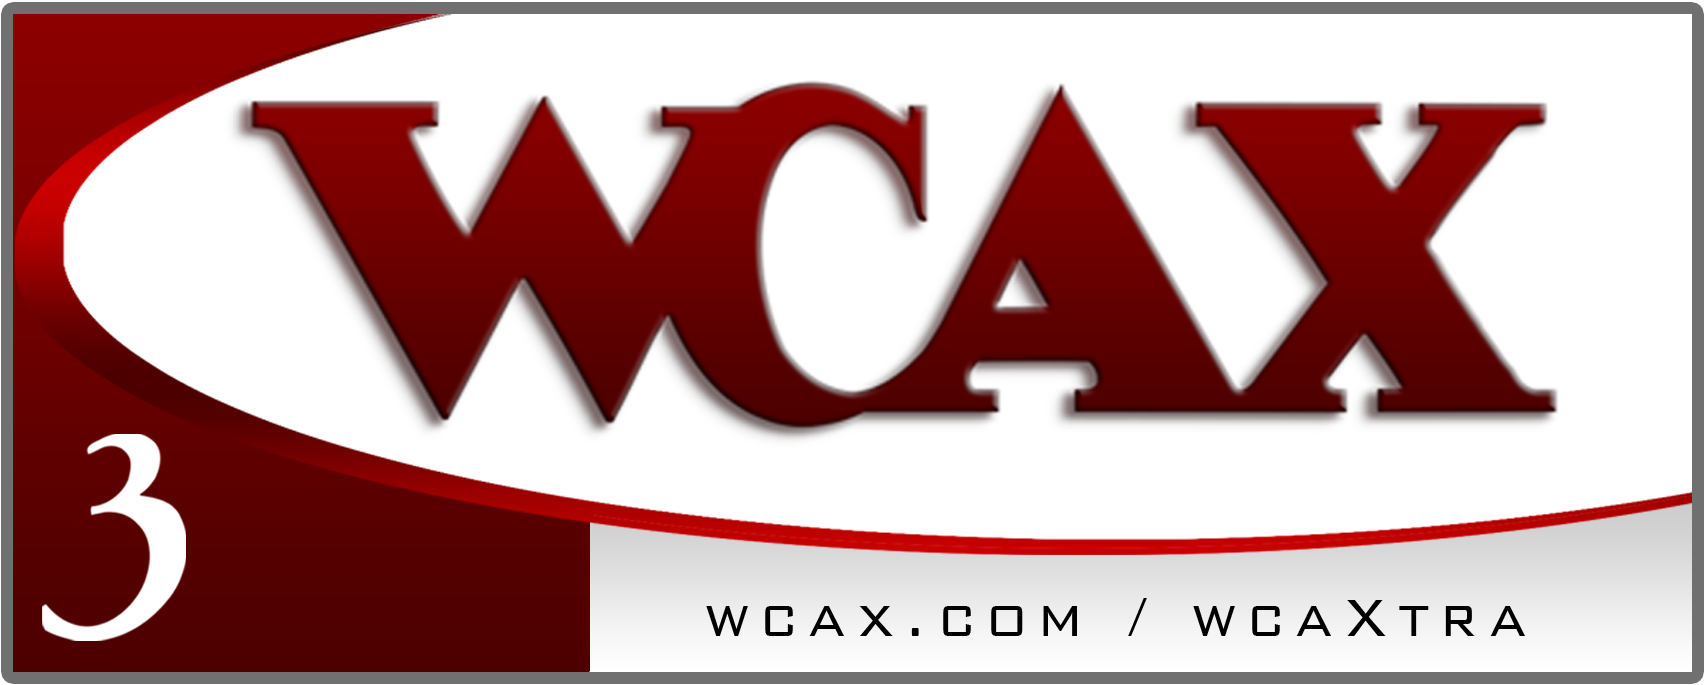 91 WCAX